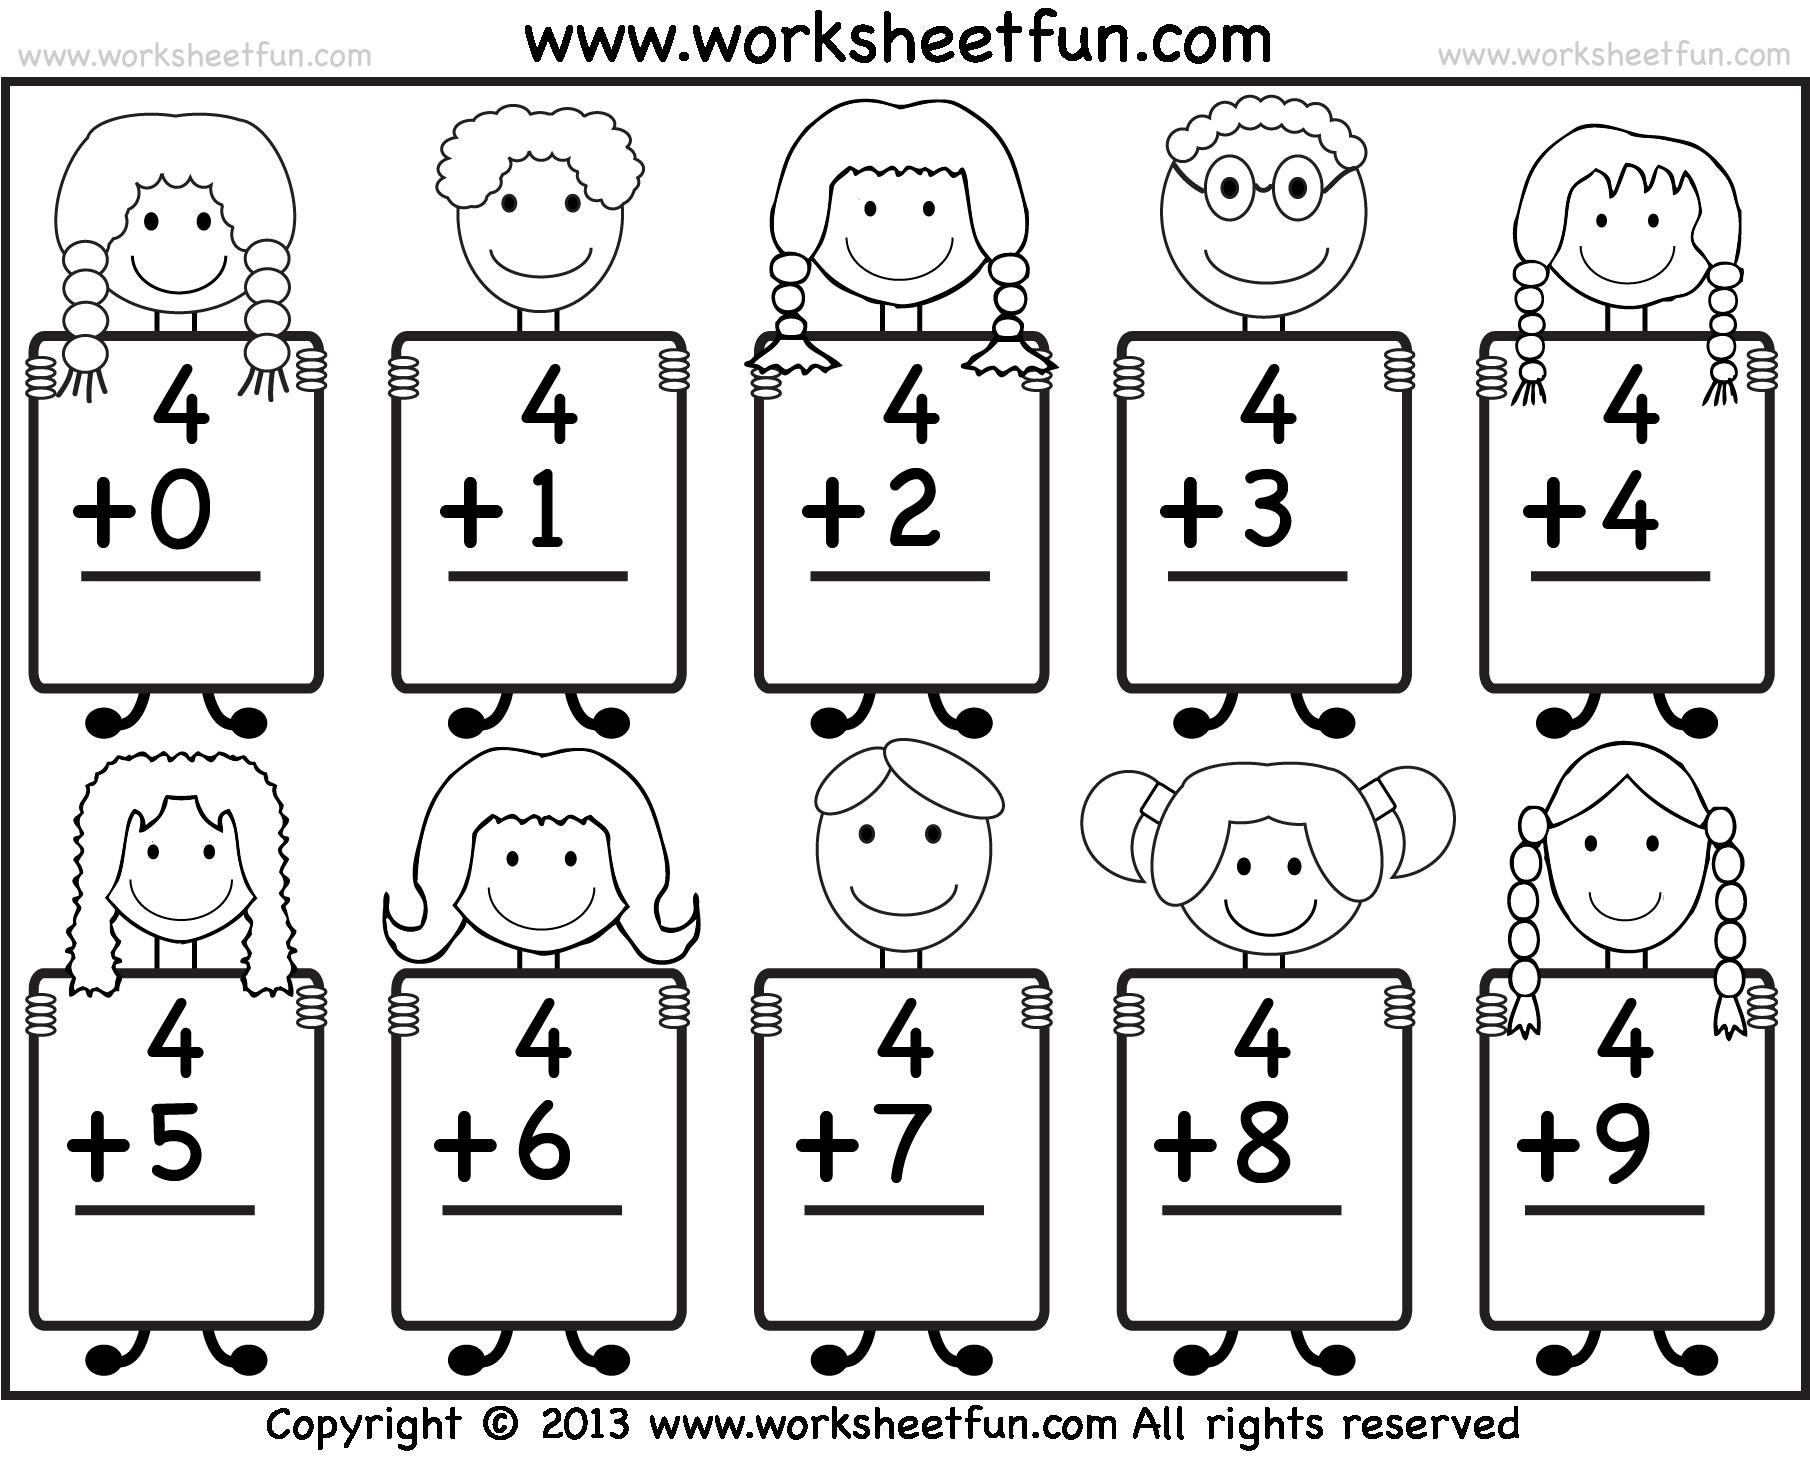 freeprintablemathworksheetsforkindergartenaddition1png – Math Worksheet for Kindergarten